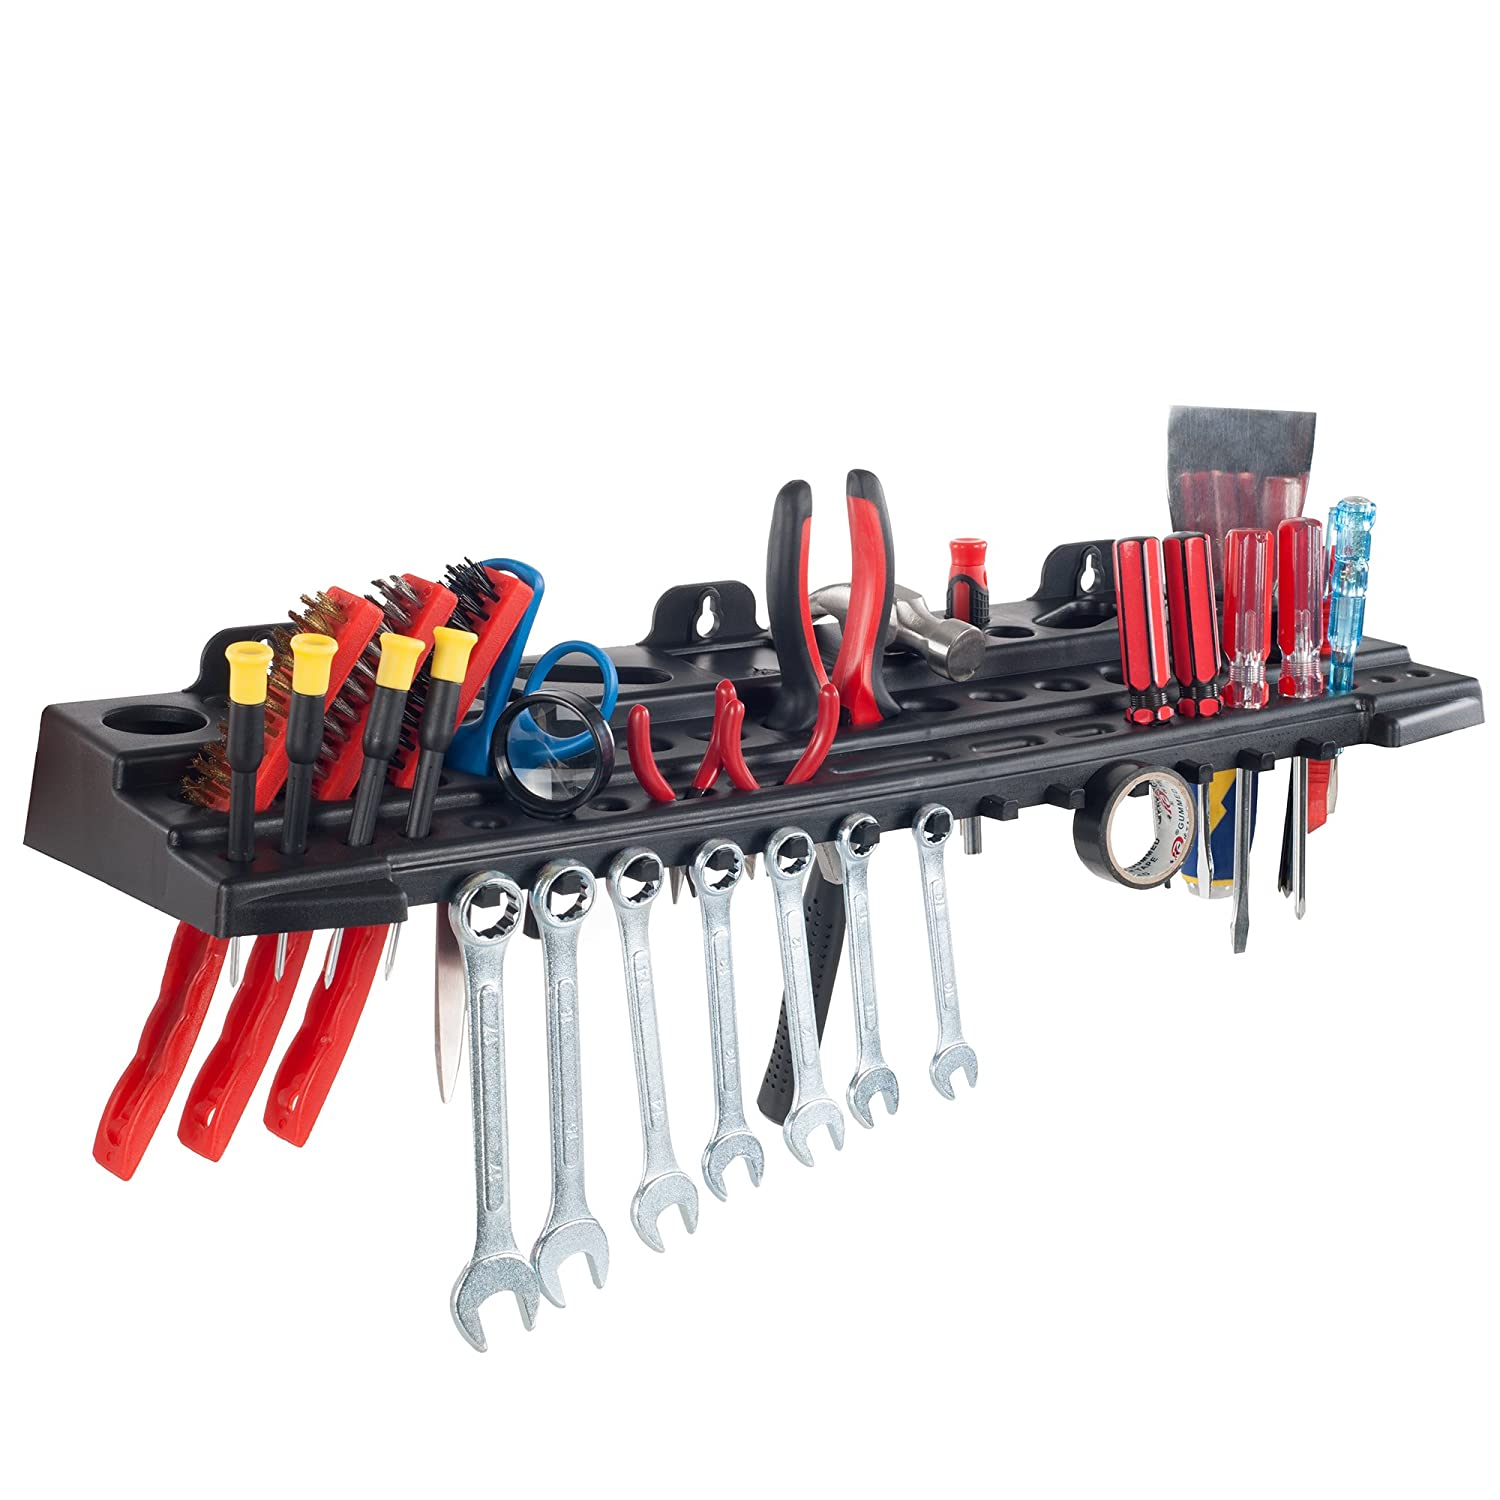 Stalwart 75-ST6005 Wall Mount Tool Organizer Shelf - Holds Over 60 Tools, 22' 22 Trademark Global